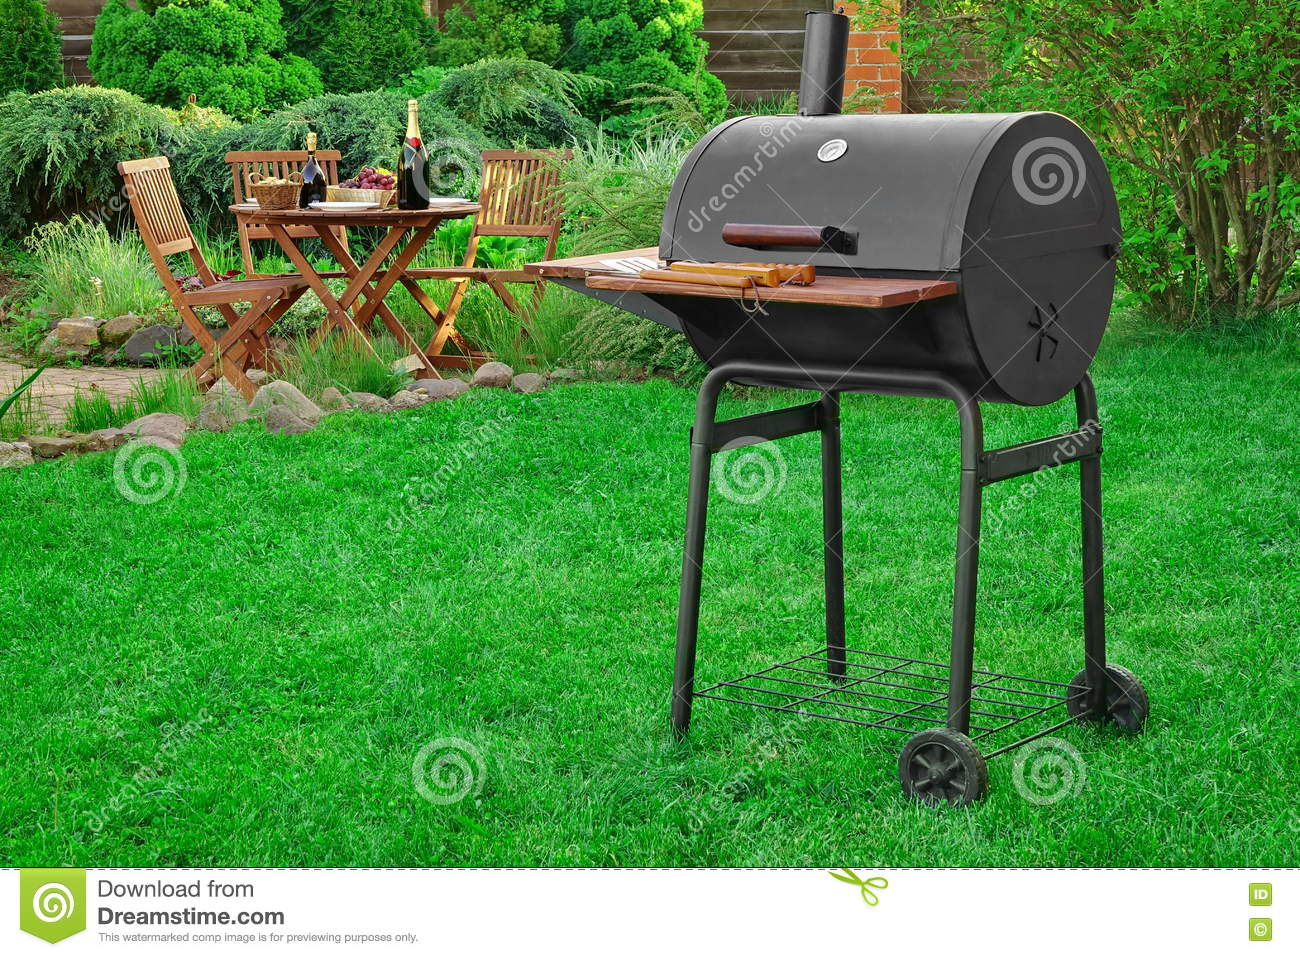 scene of barbecue grill party on lawn in the backyard stock photo